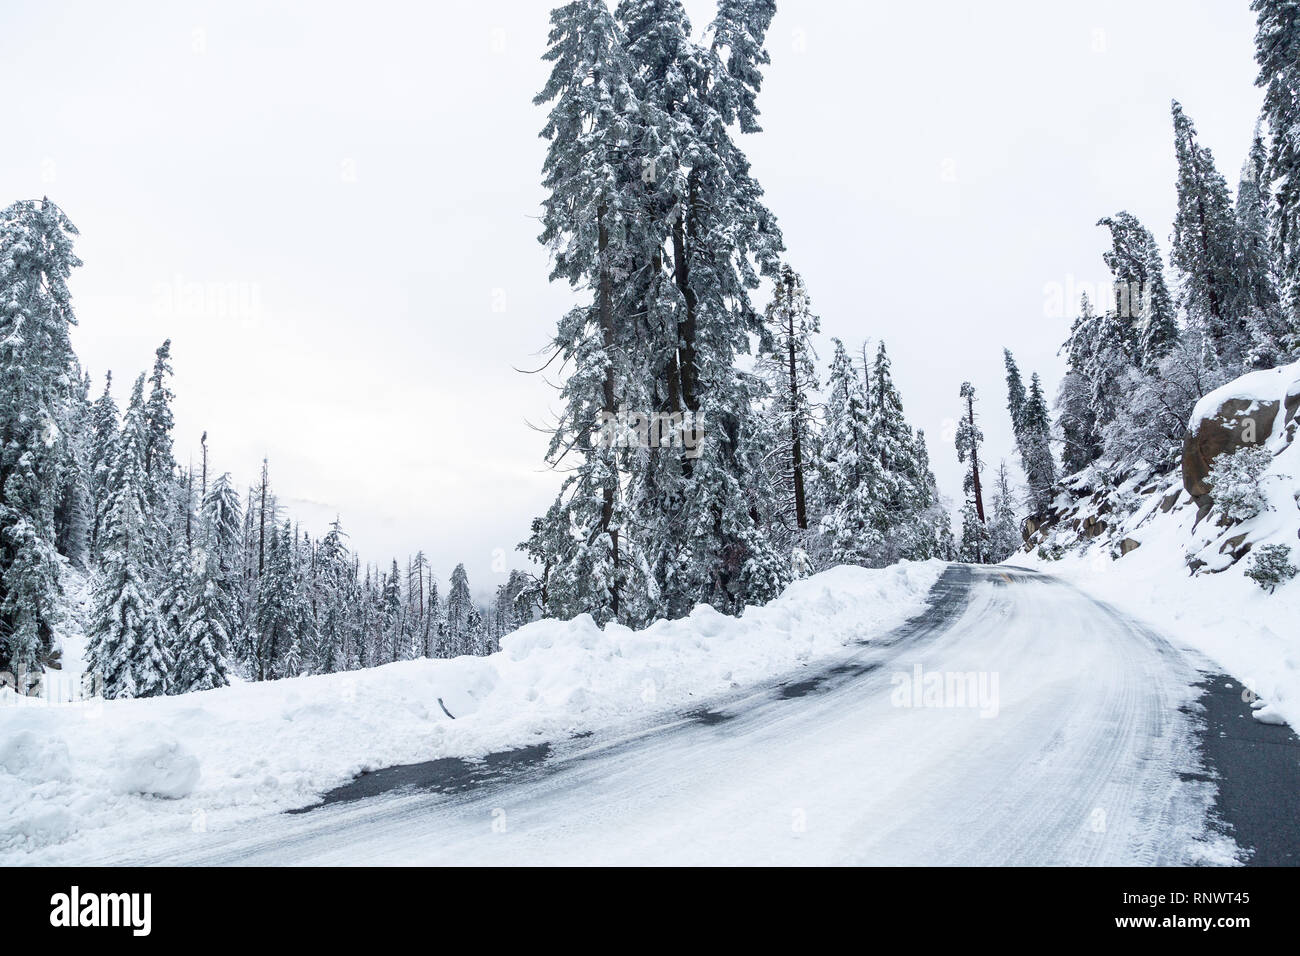 Snow and icy road conditions on SR 190 after a winter storm in Sequoia National Monument, California - Stock Image